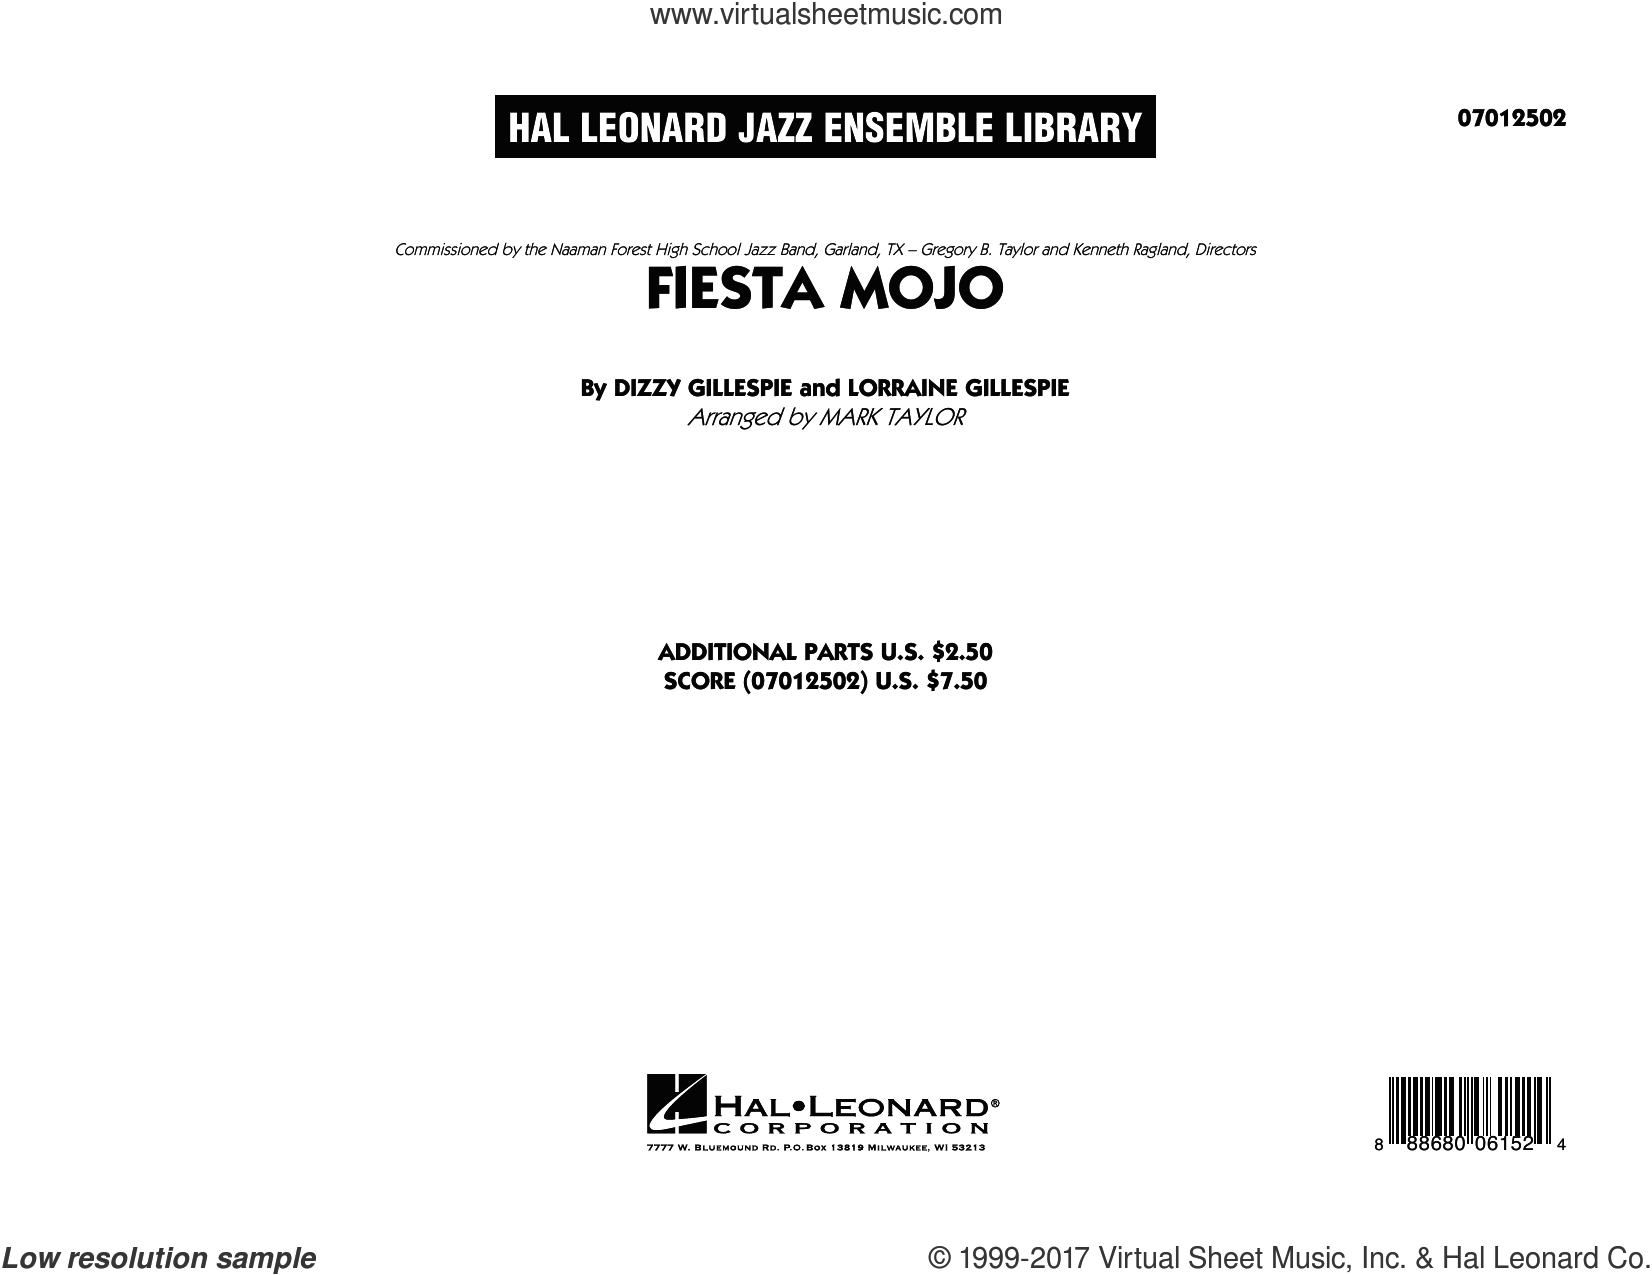 Fiesta Mojo (COMPLETE) sheet music for jazz band by Mark Taylor, Dizzy Gillespie and Lorraine Gillespie, intermediate skill level